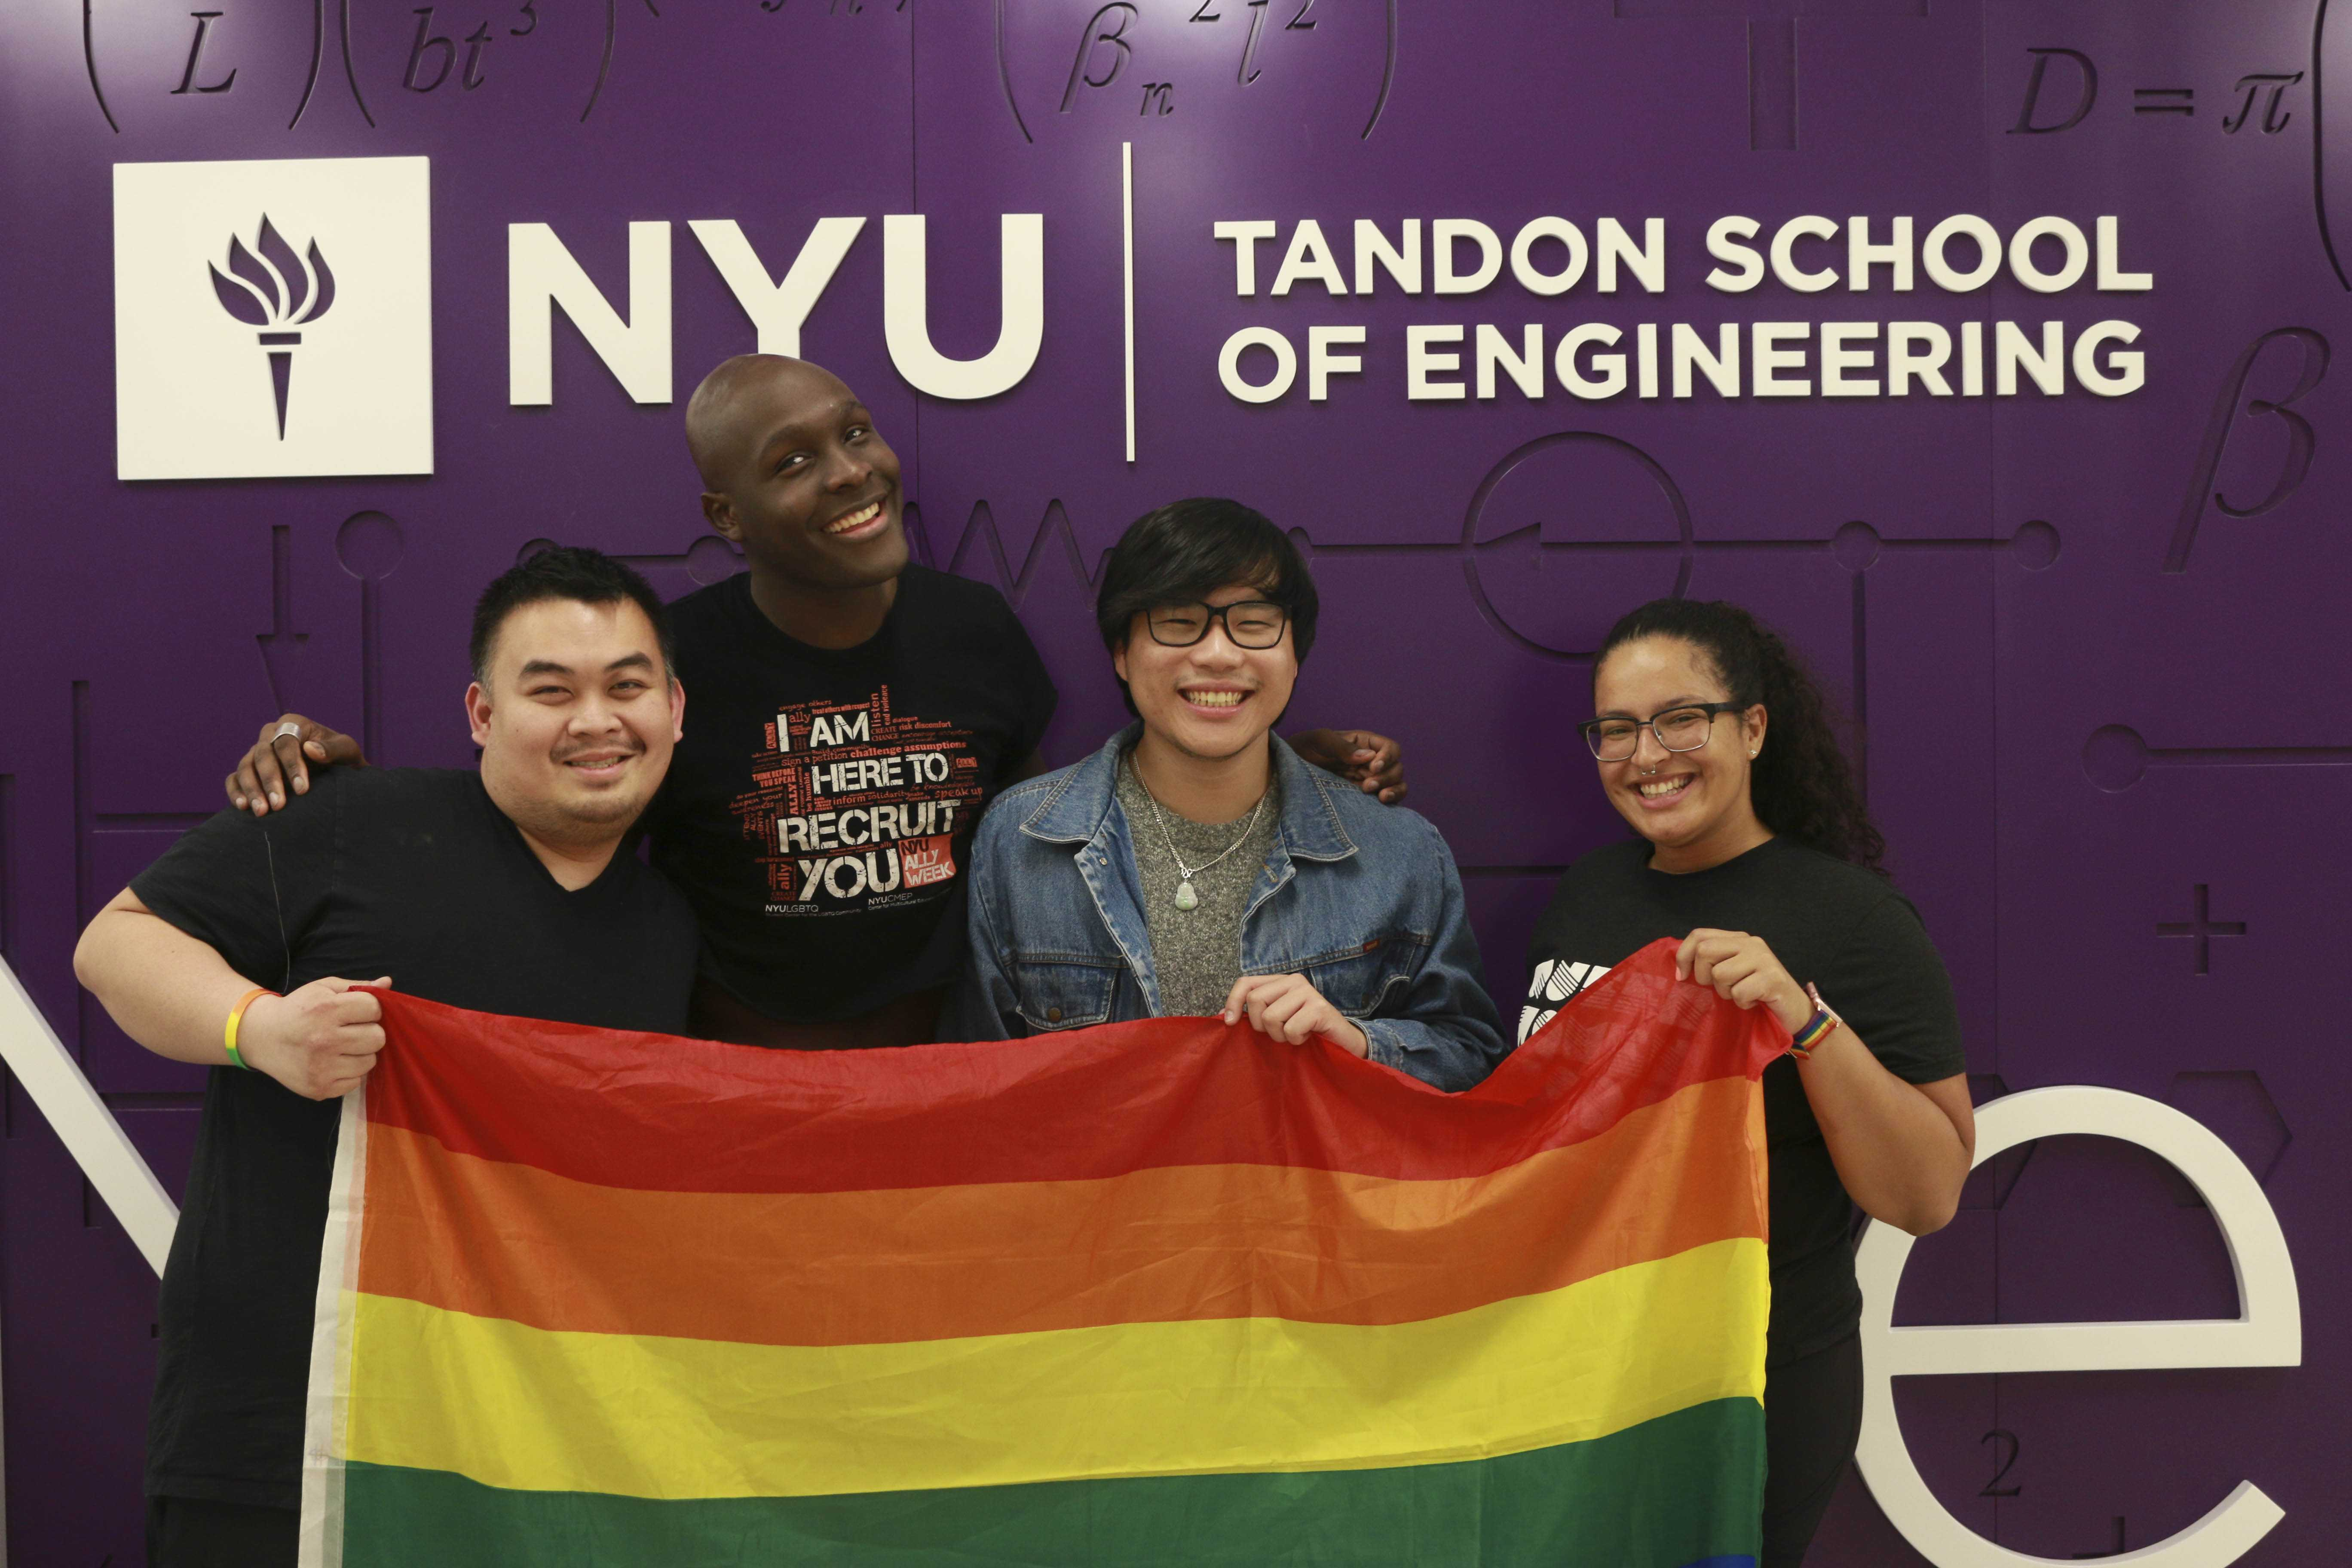 oSTEM, which stands for Out in Science, Technology, Engineering and Mathematics, is an international organization that supports the queer and trans community in the STEM fields. oSTEM at NYU Tandon School of Engineering also helps foster safe spaces on campus.